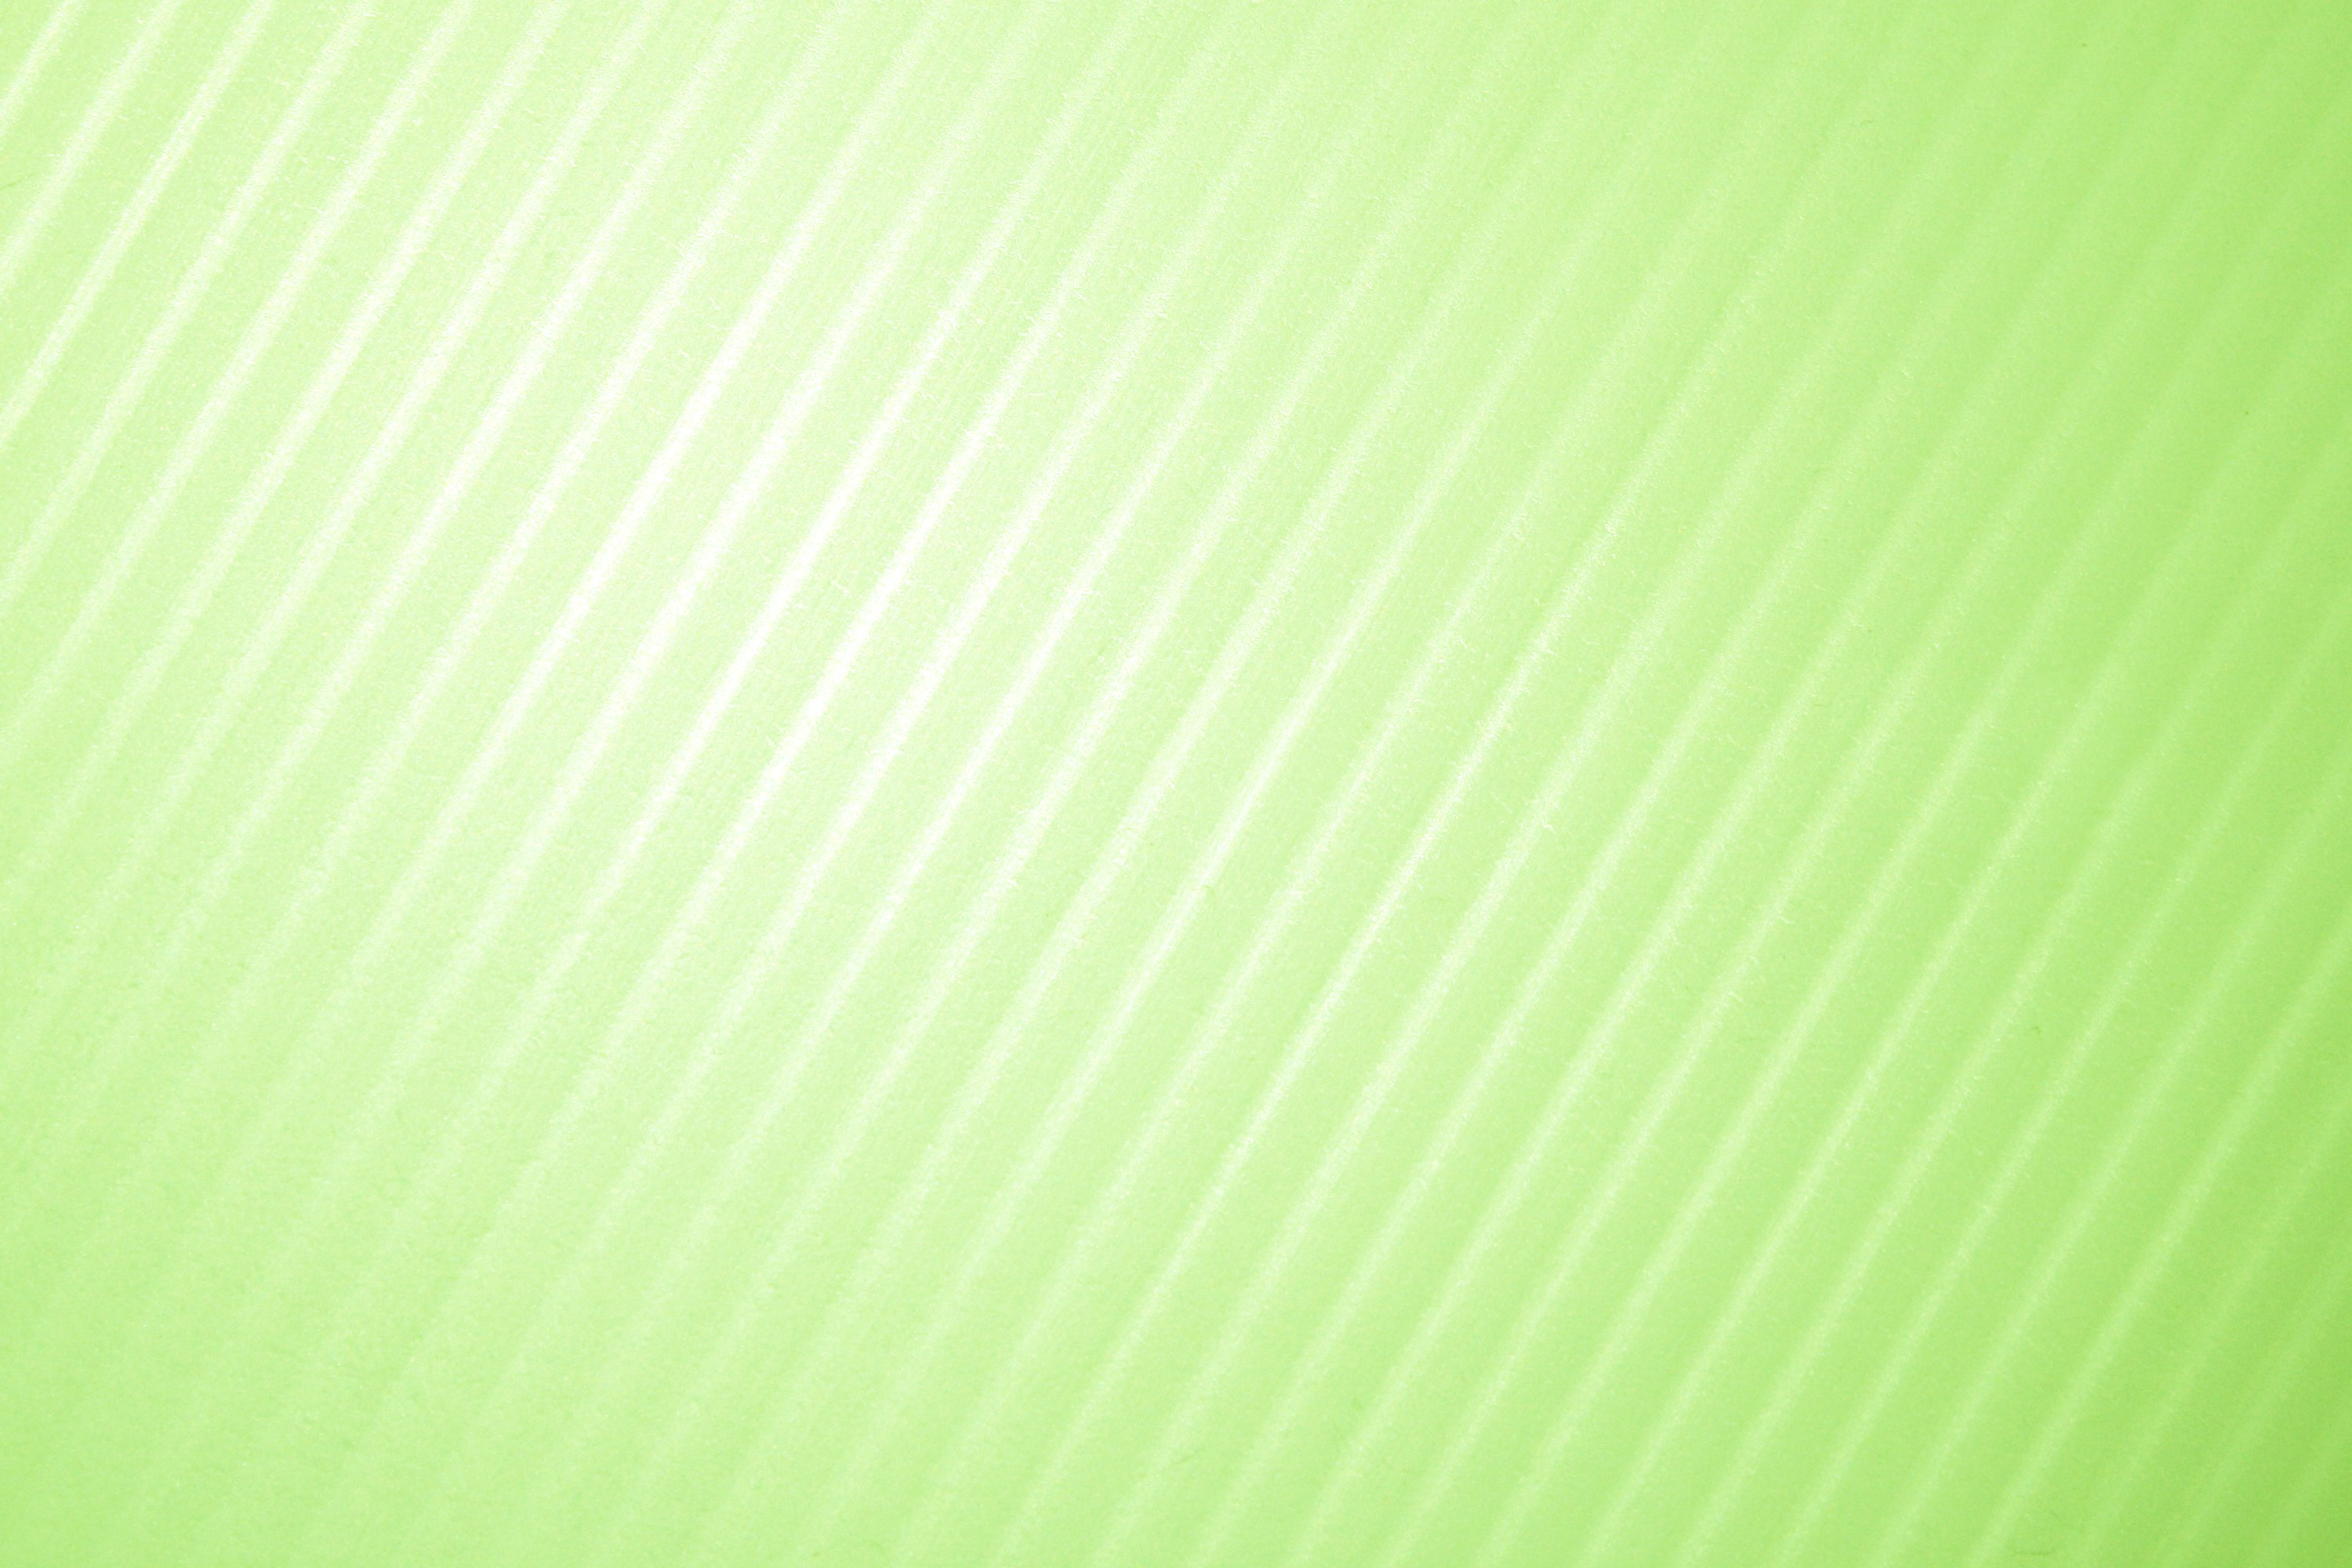 lime green diagonal striped plastic texture picture free